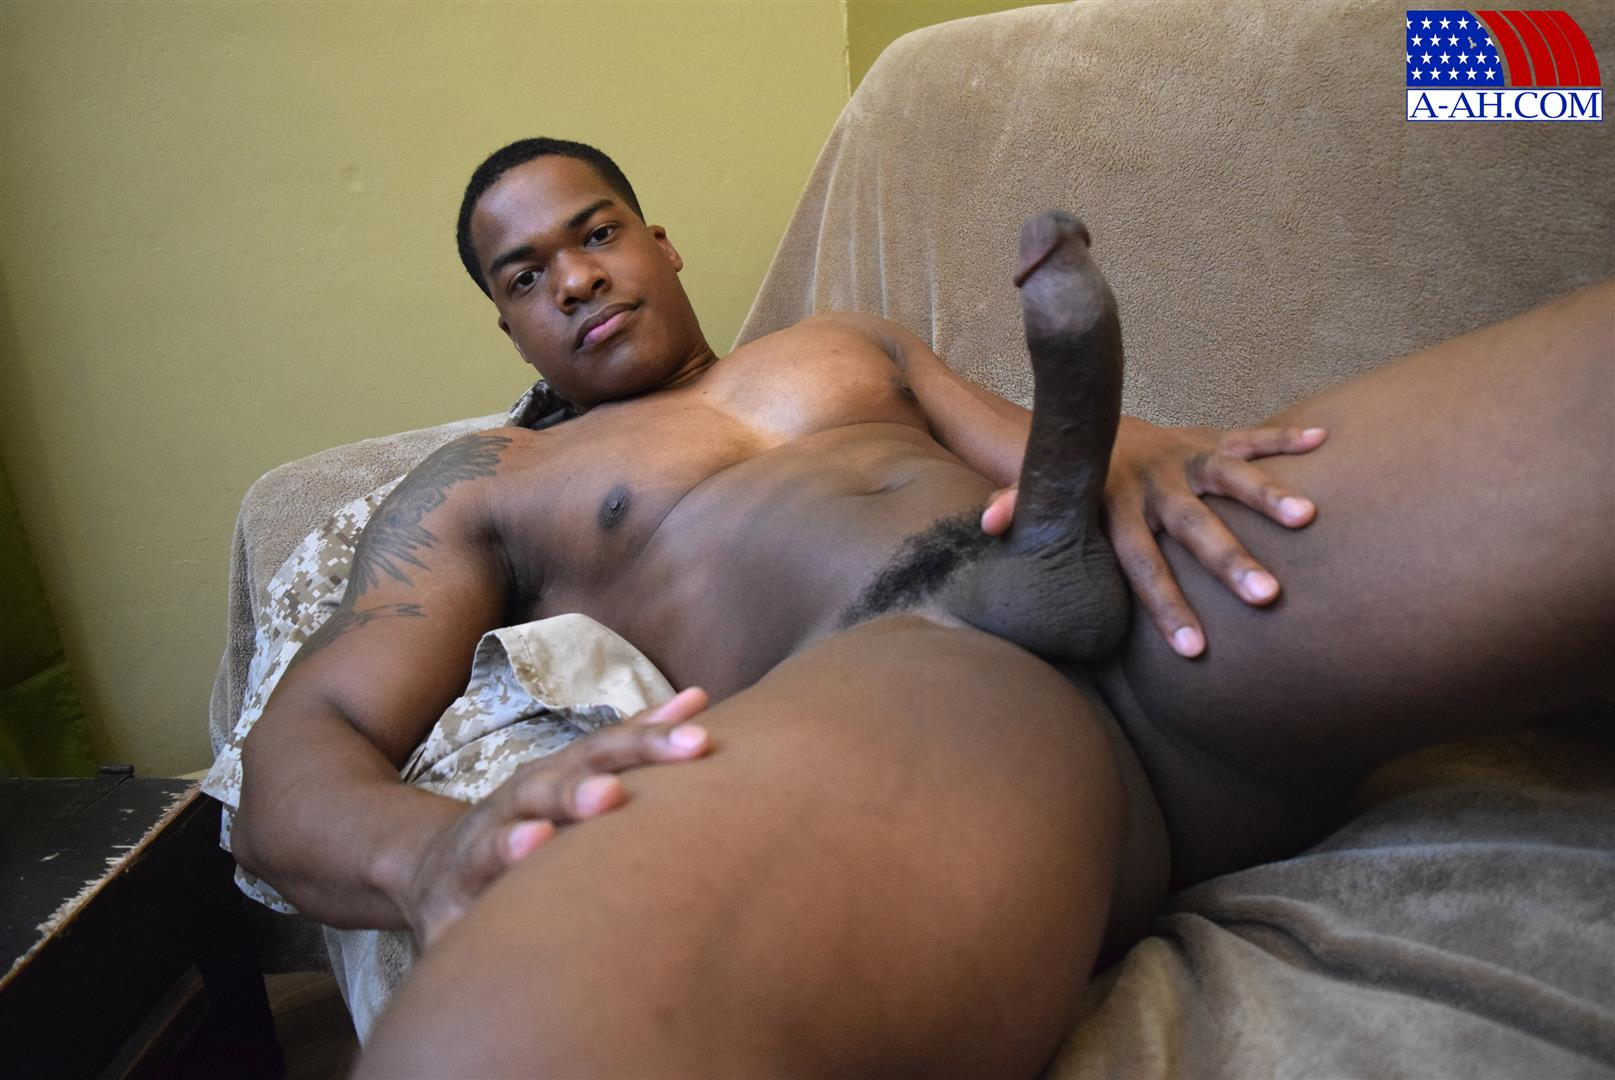 Big black dick gay pron